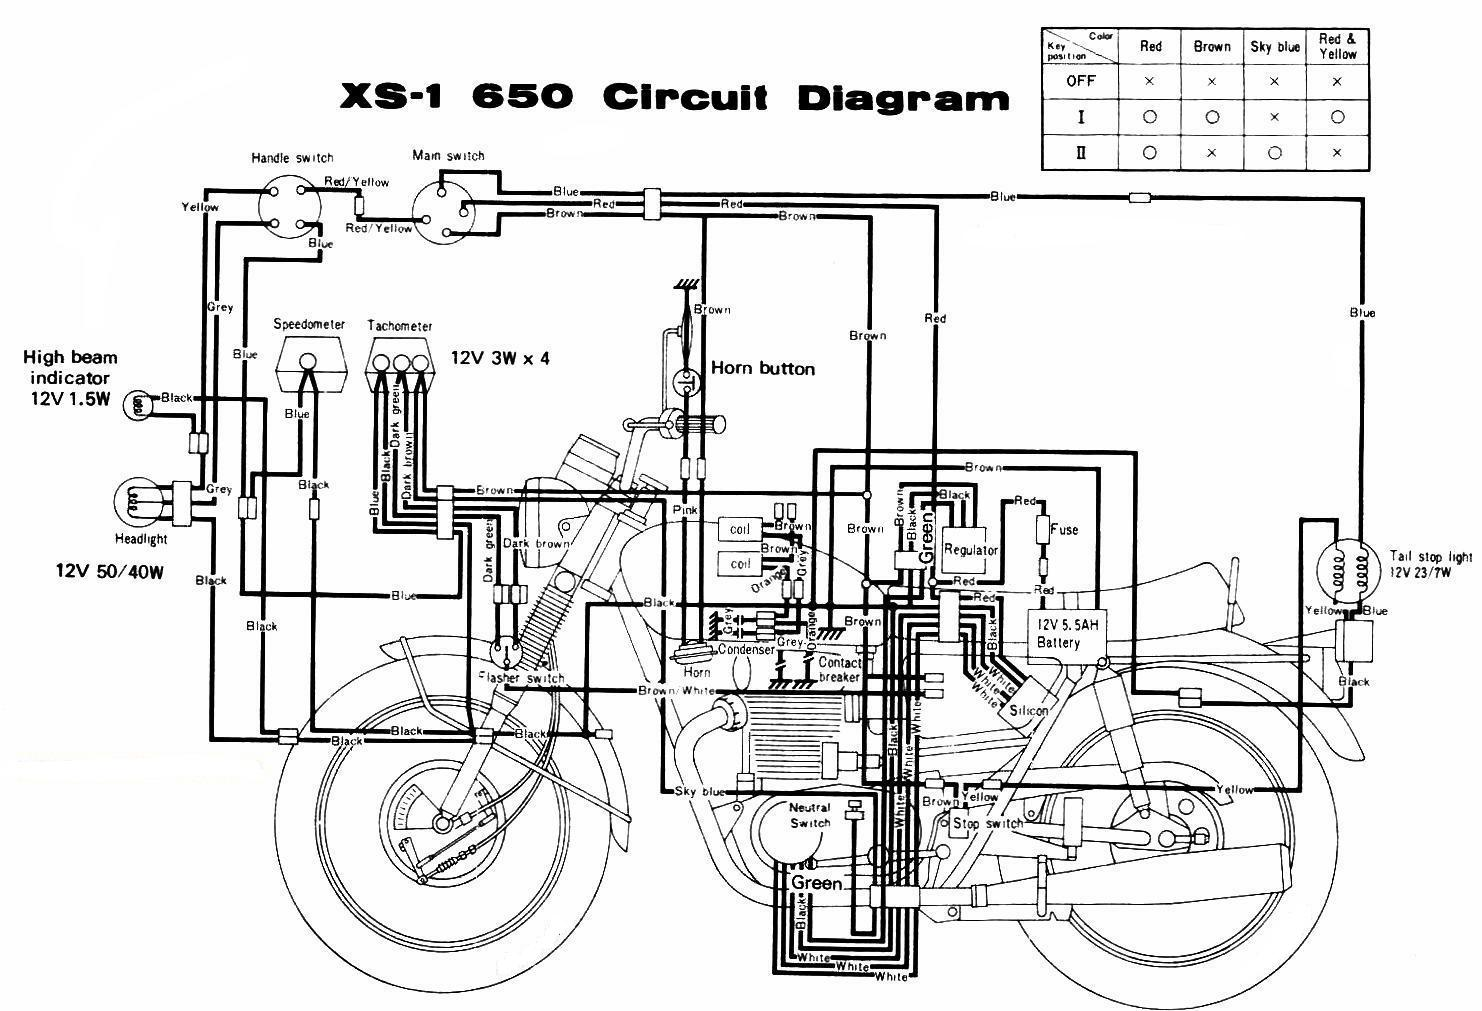 Wiring Diagram Suzuki Rc 100 Diy Enthusiasts Diagrams Car Schematic Rh Oregonmotorcycleparts Com